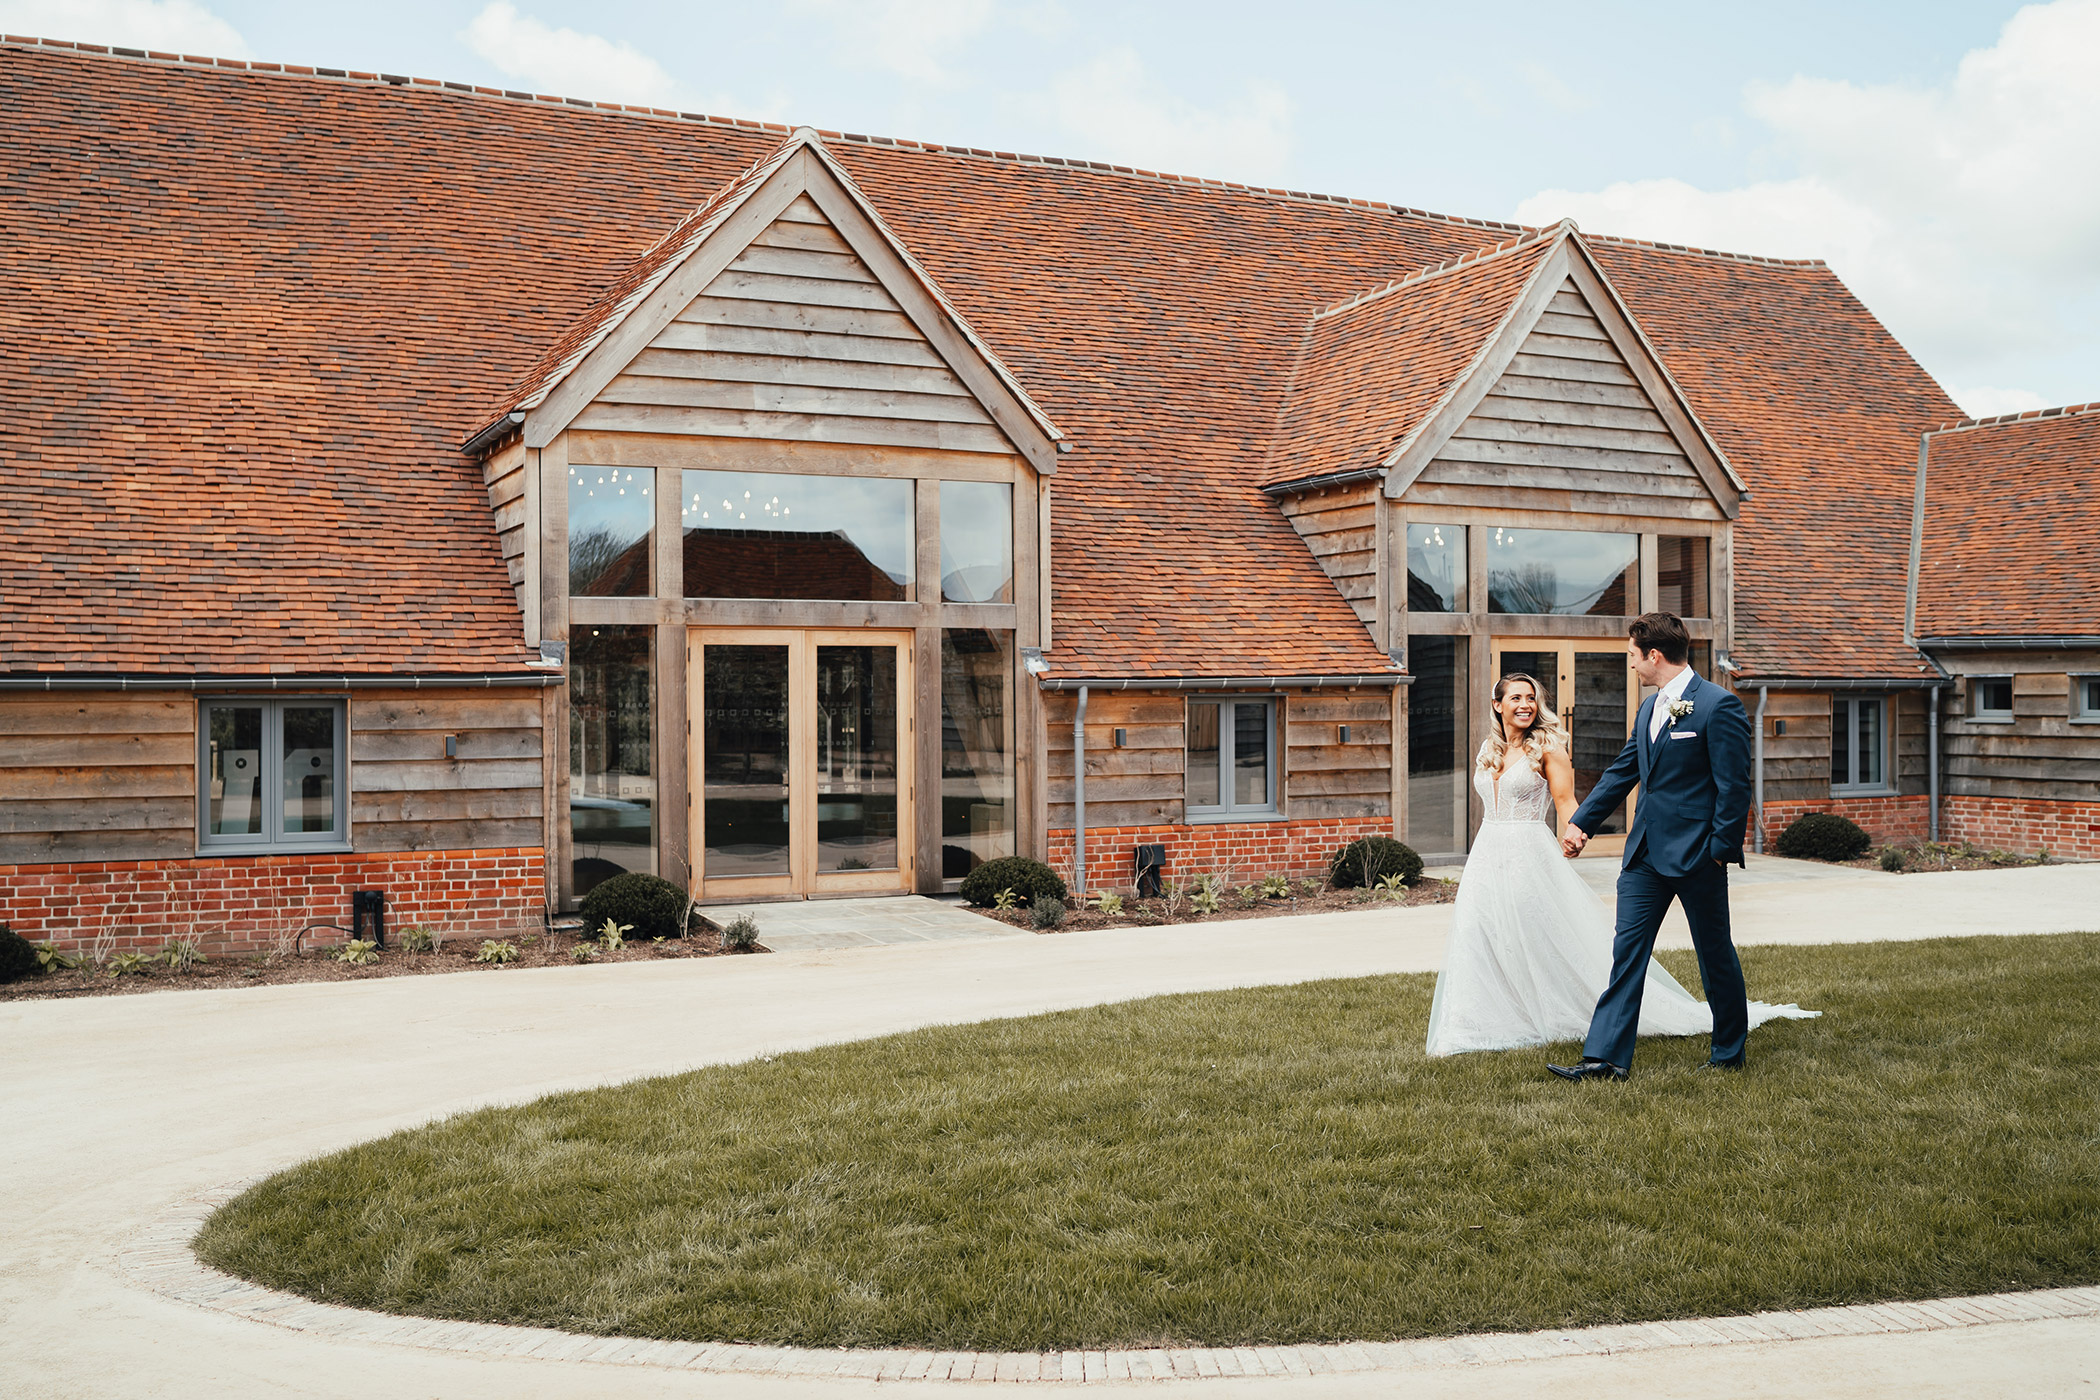 Rackleys Chiltern Hills Wedding Barn Buckinghamshire